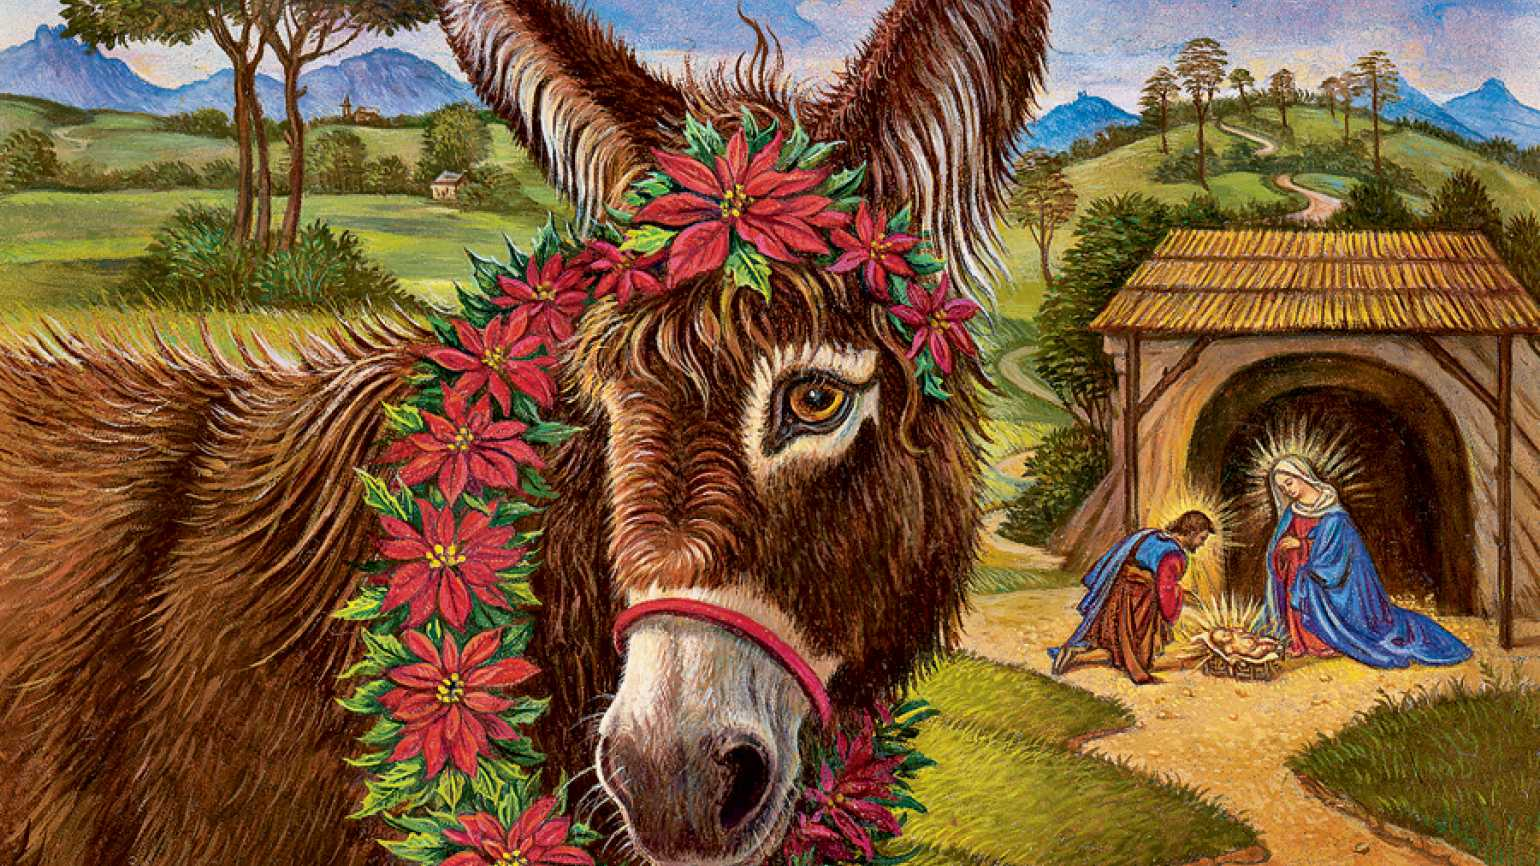 Guideposts: An artist's rendering of a donkey at the manger